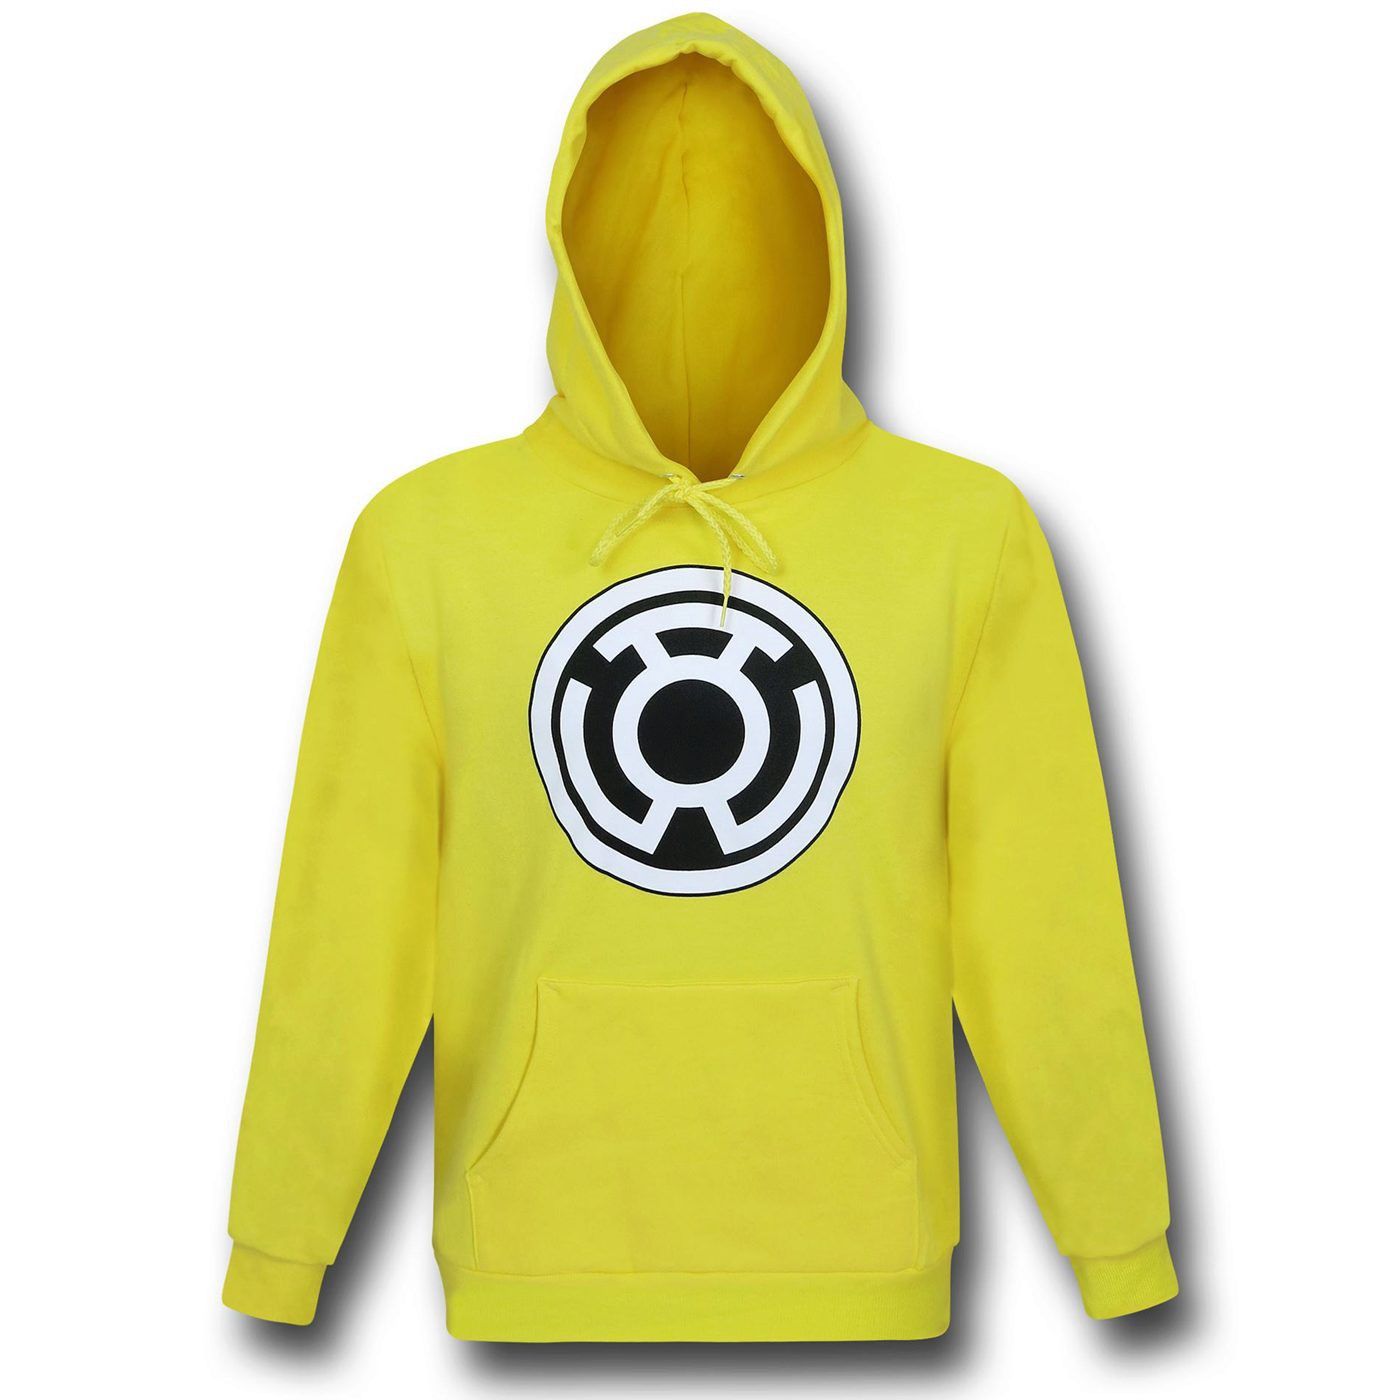 Green Lantern Sinestro Corps Yellow Pullover Hoodie